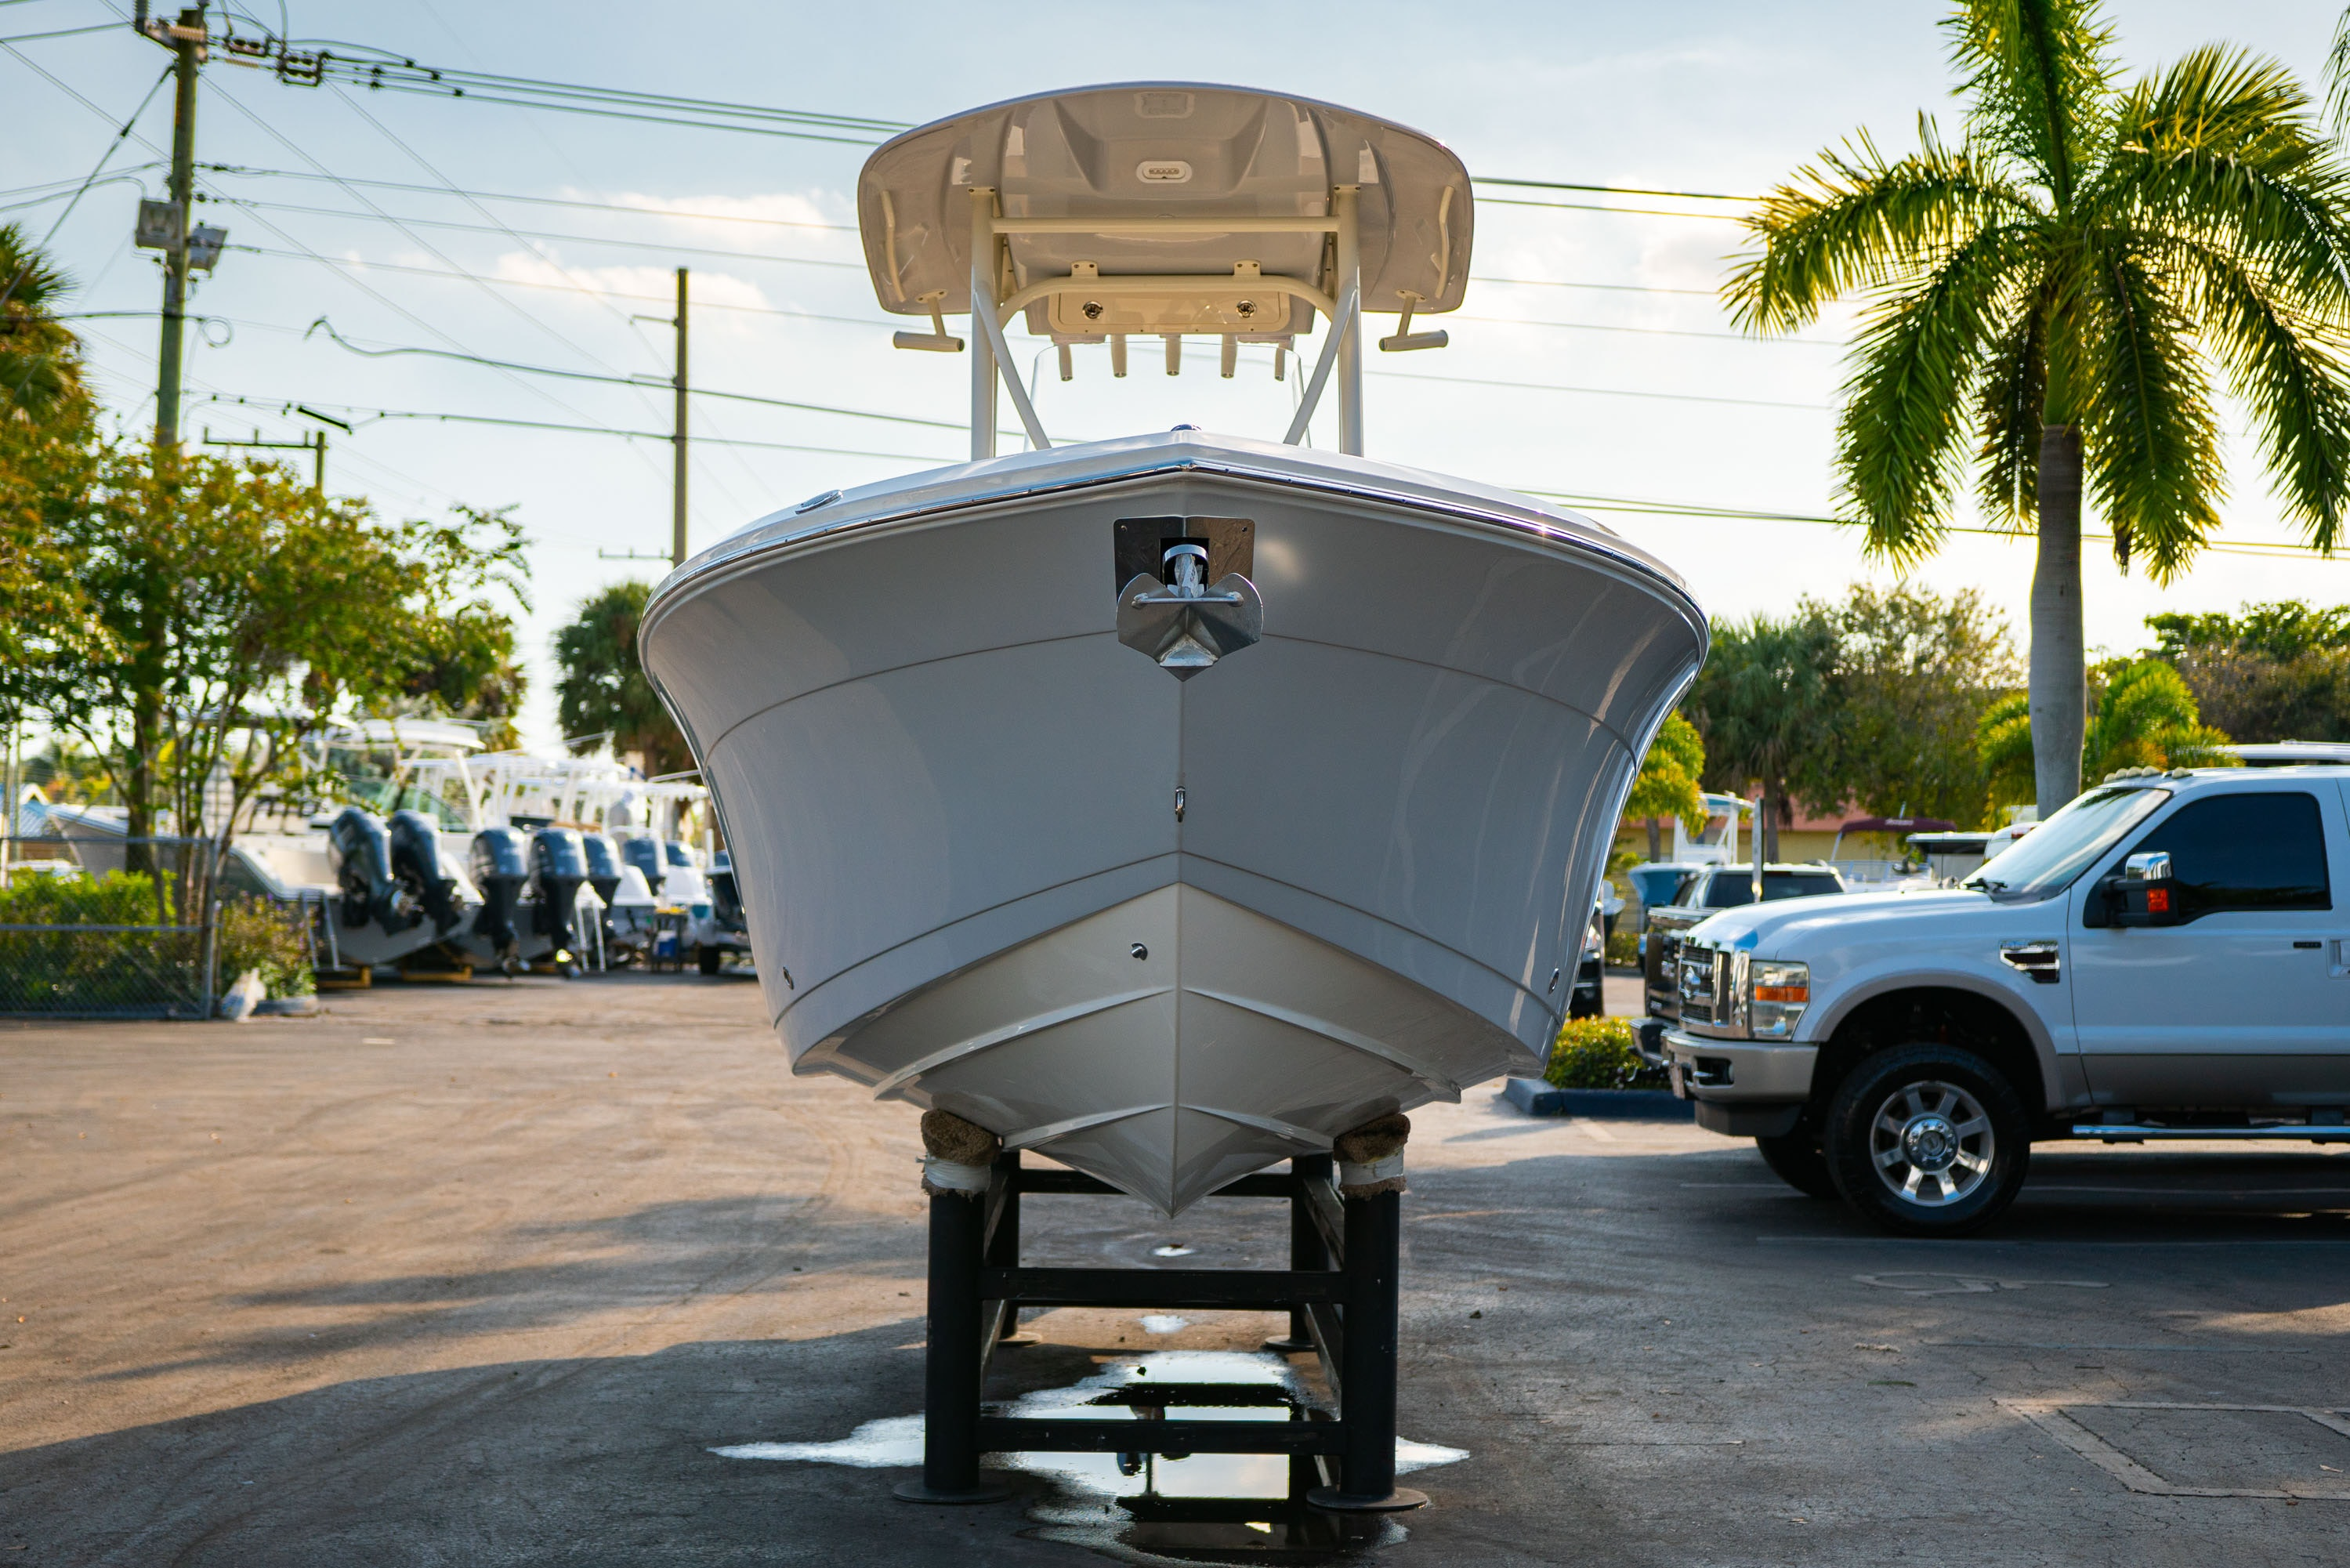 Thumbnail 2 for New 2020 Cobia 220 CC boat for sale in West Palm Beach, FL